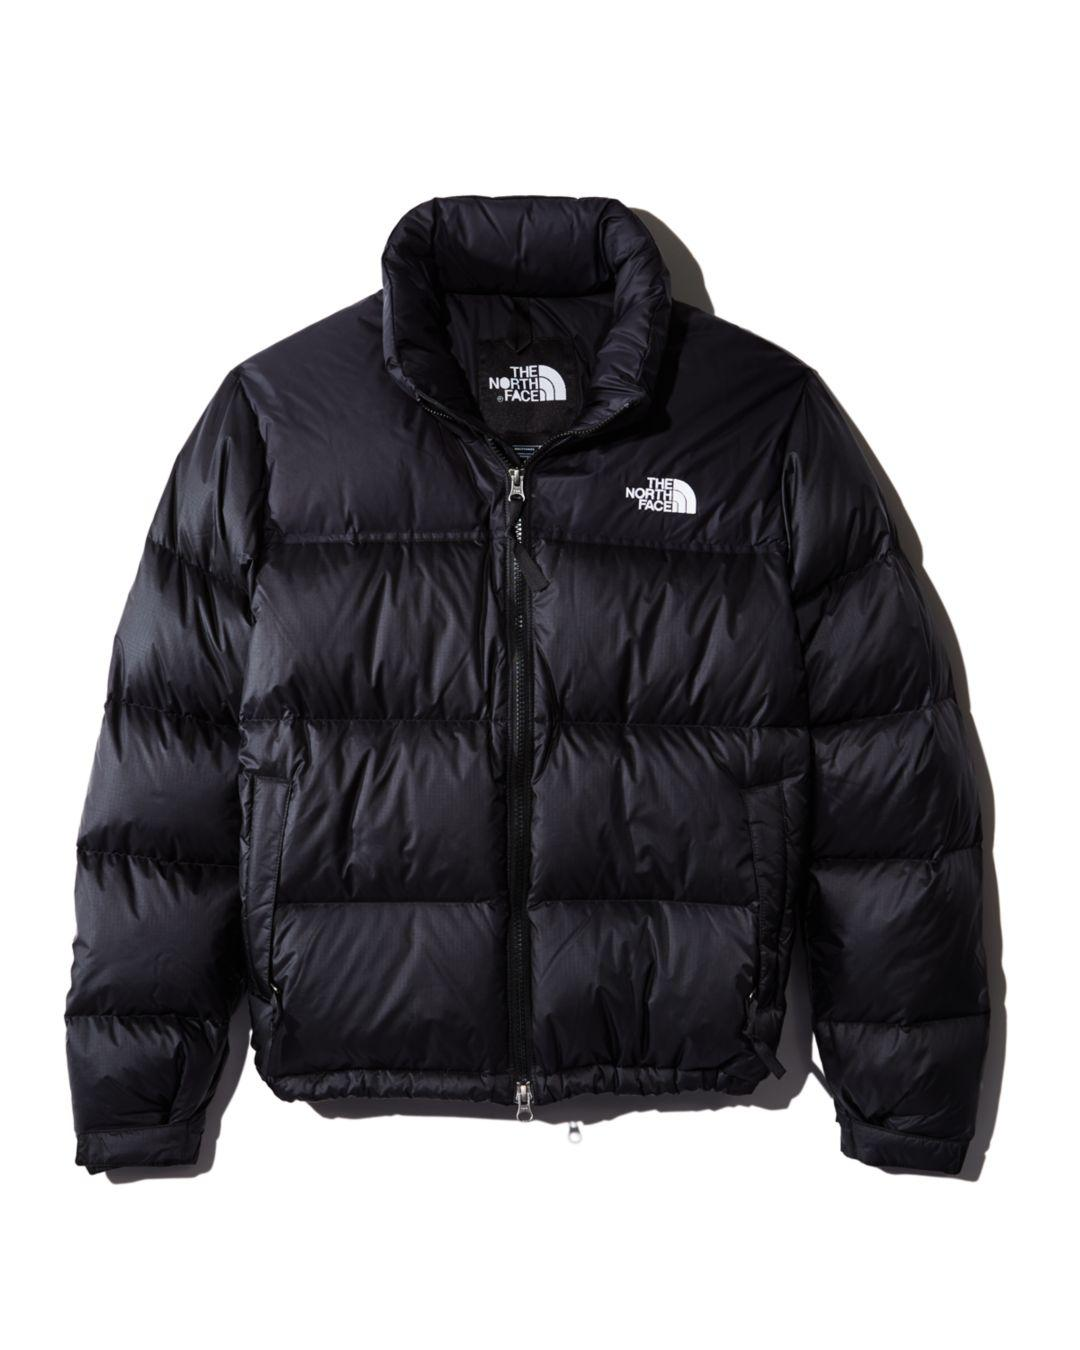 Lyst - The North Face 1996 Retro Nuptse Puffer Jacket in Black c1647b6f9